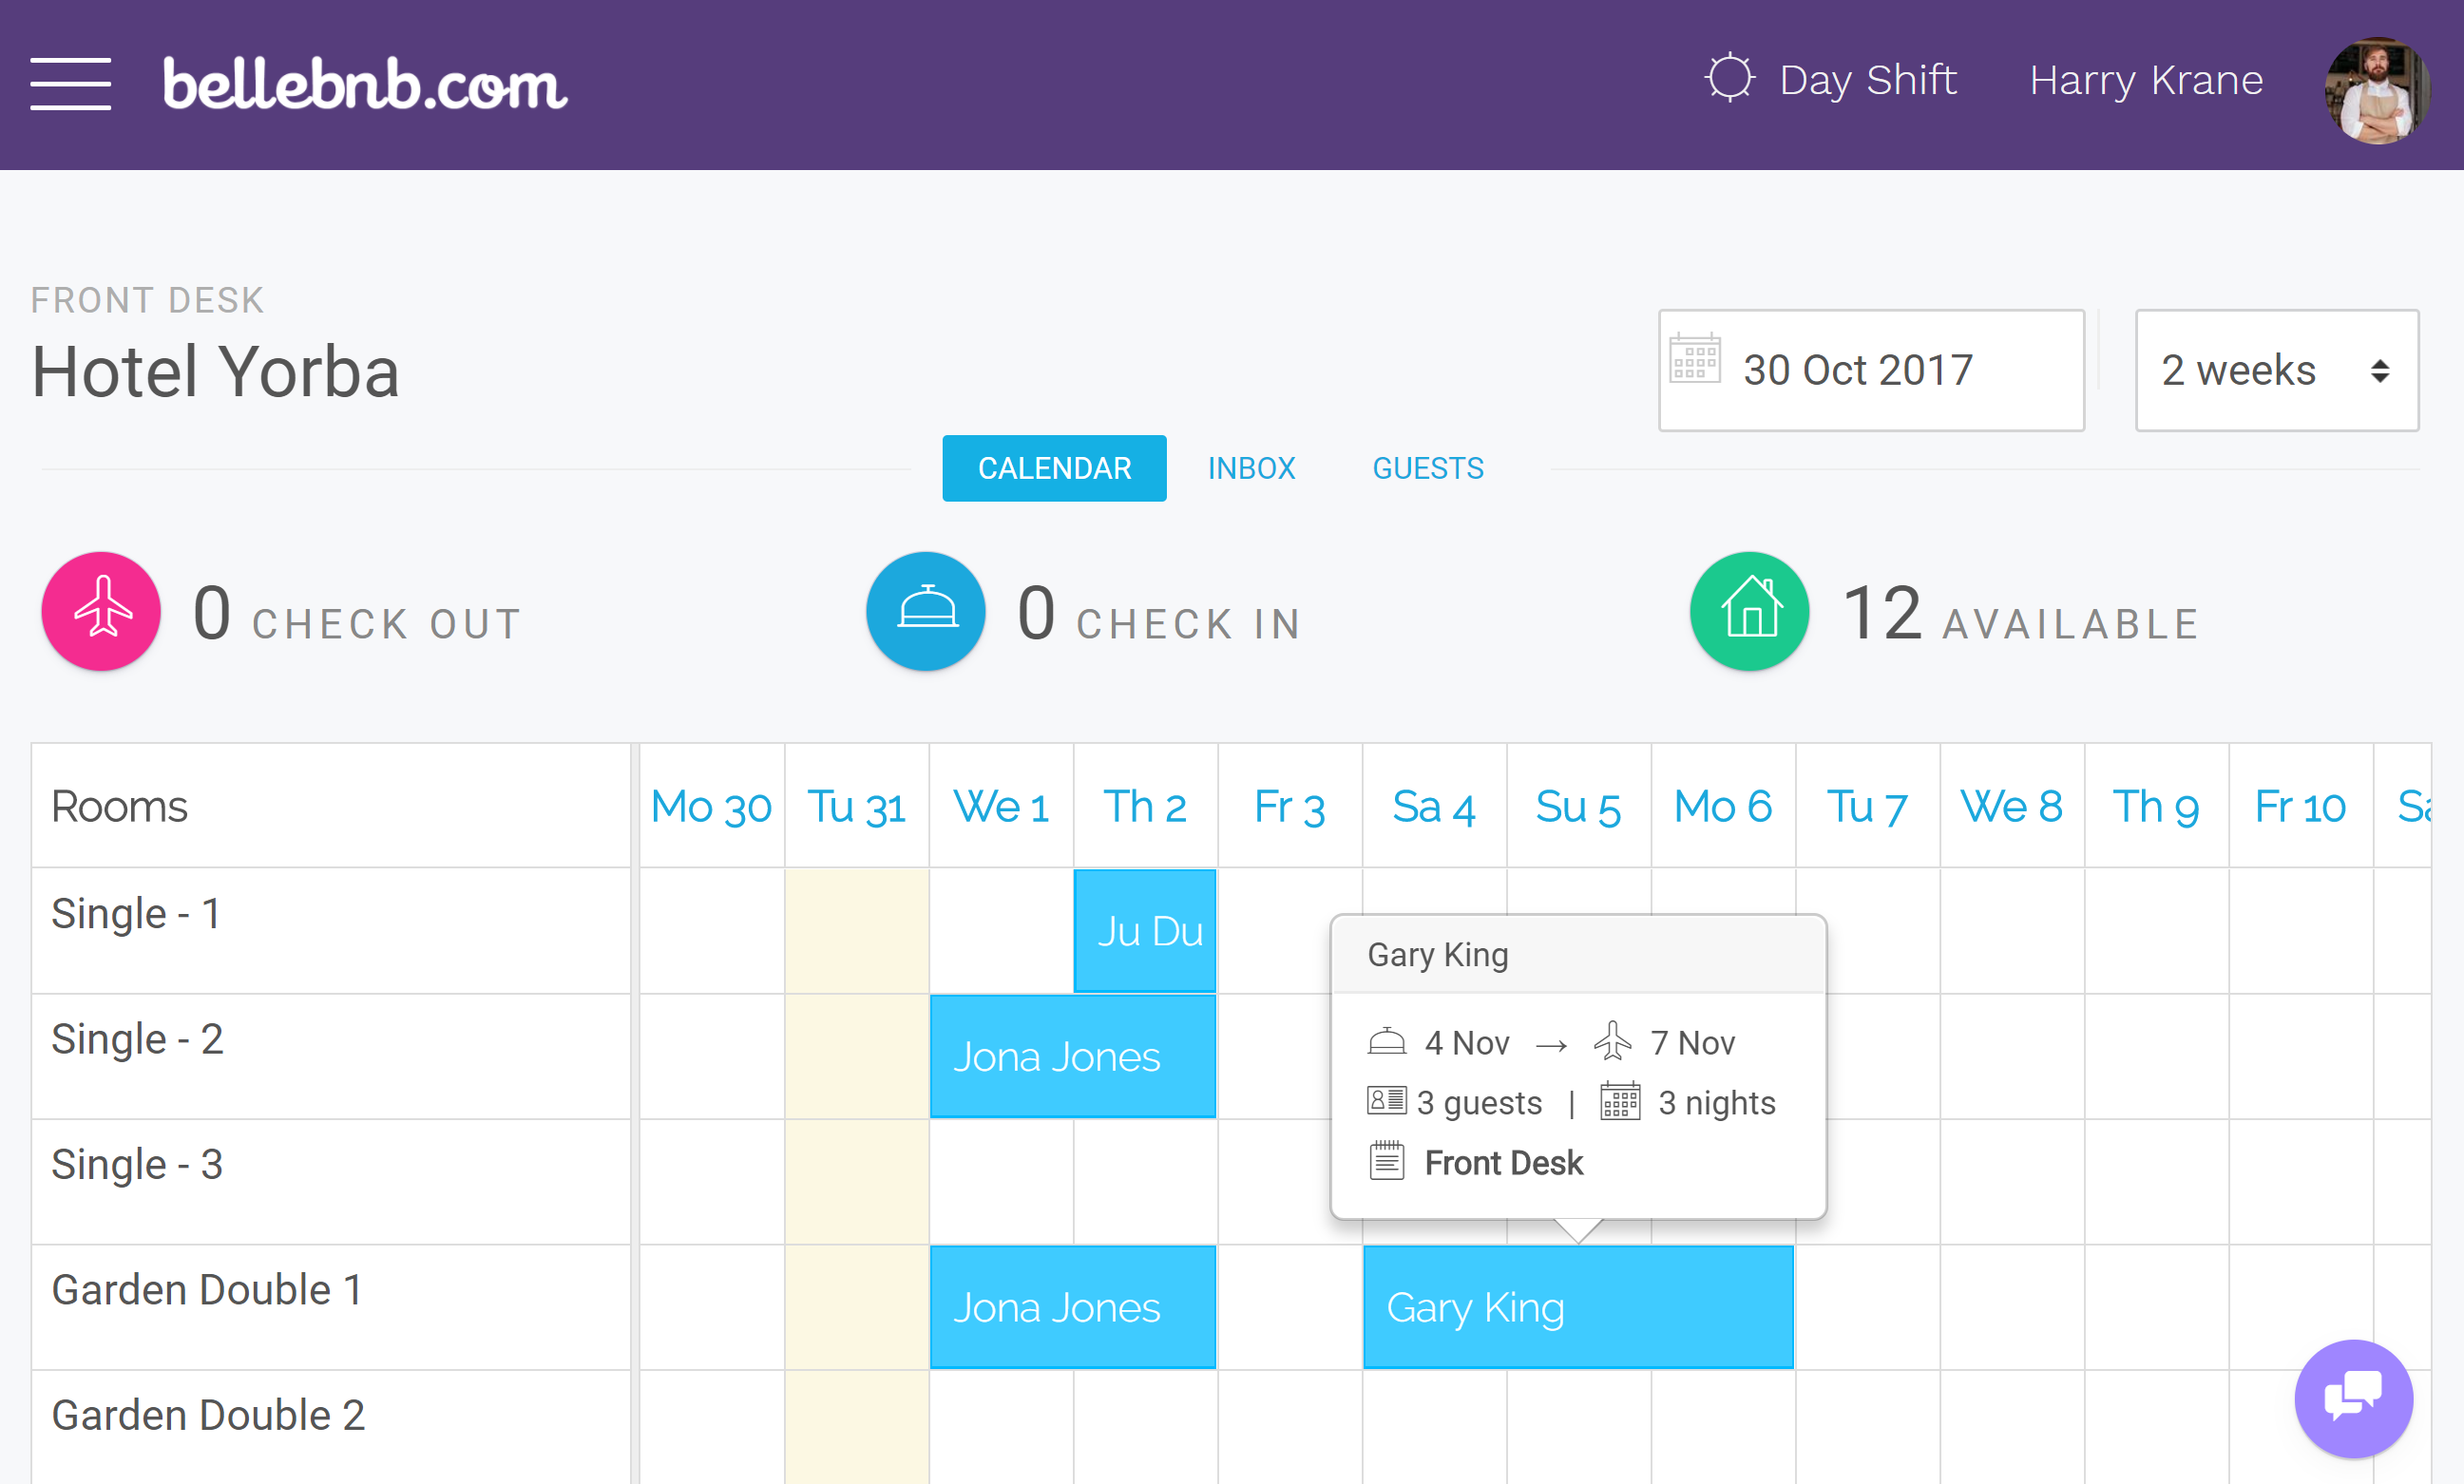 Hotel Drag-n-Drop Calendar Your reservations calendar has been updated to make it even easier to manage your hotel's daily activity. You can now drag and resize to create and reschedule bookings.